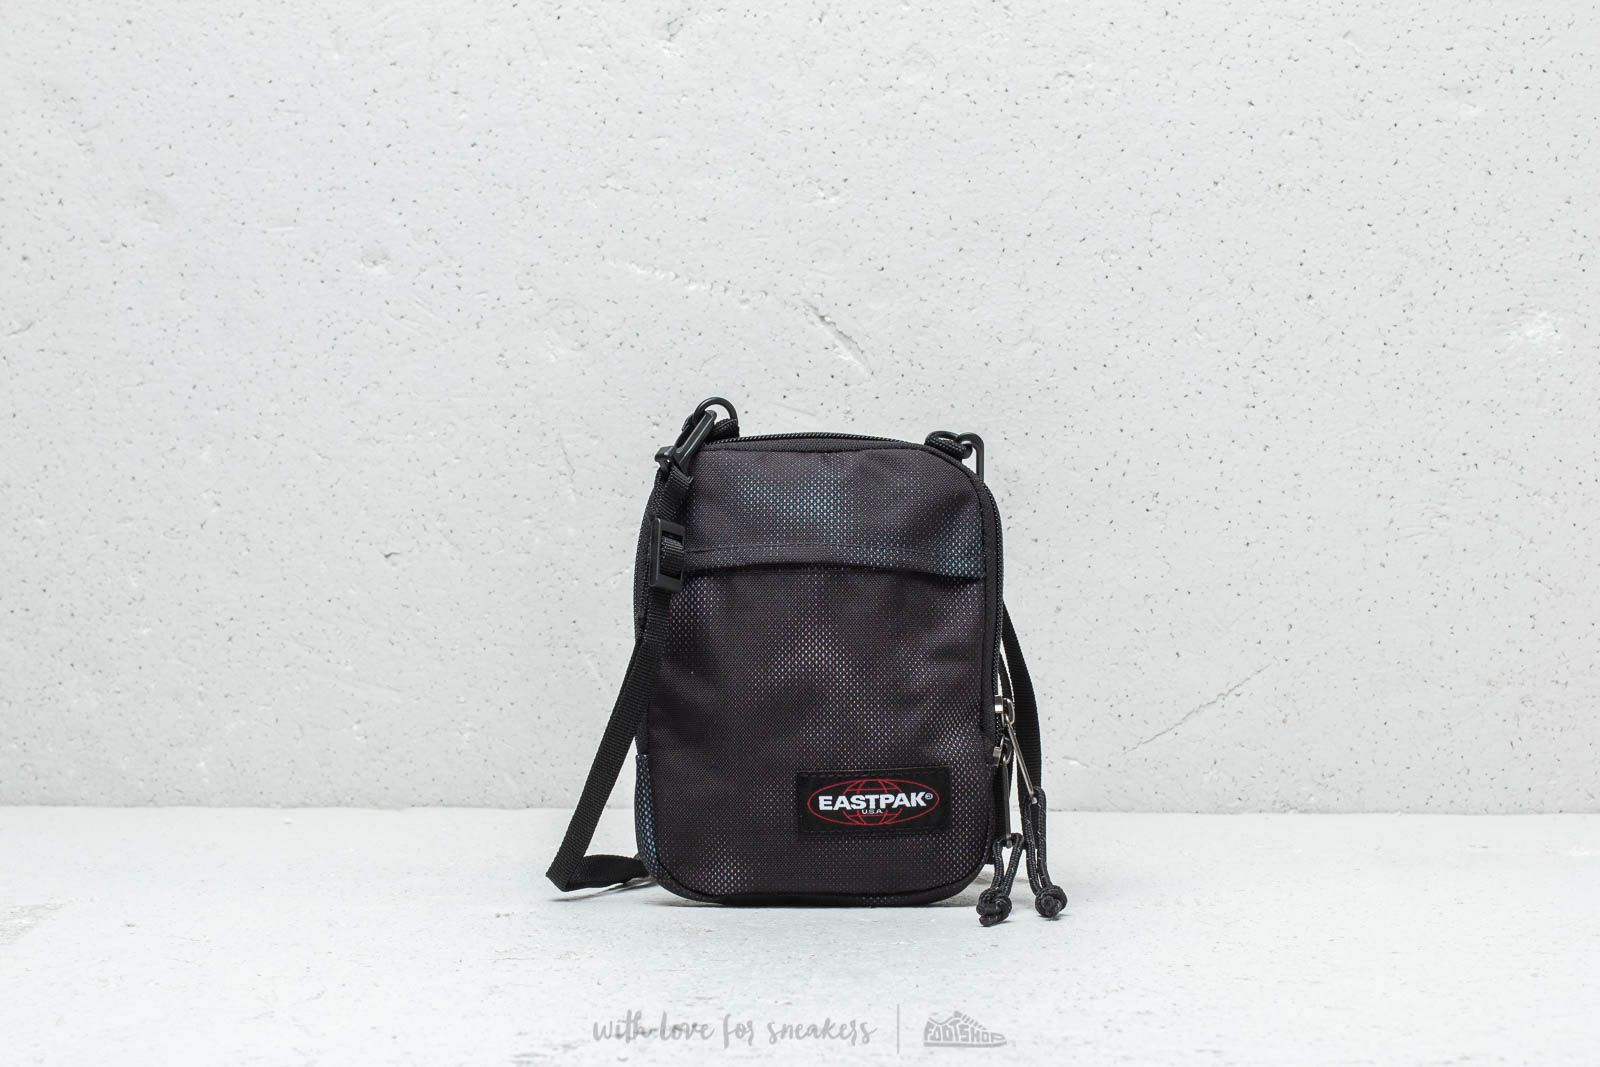 Eastpak Buddy Bag Transmulti